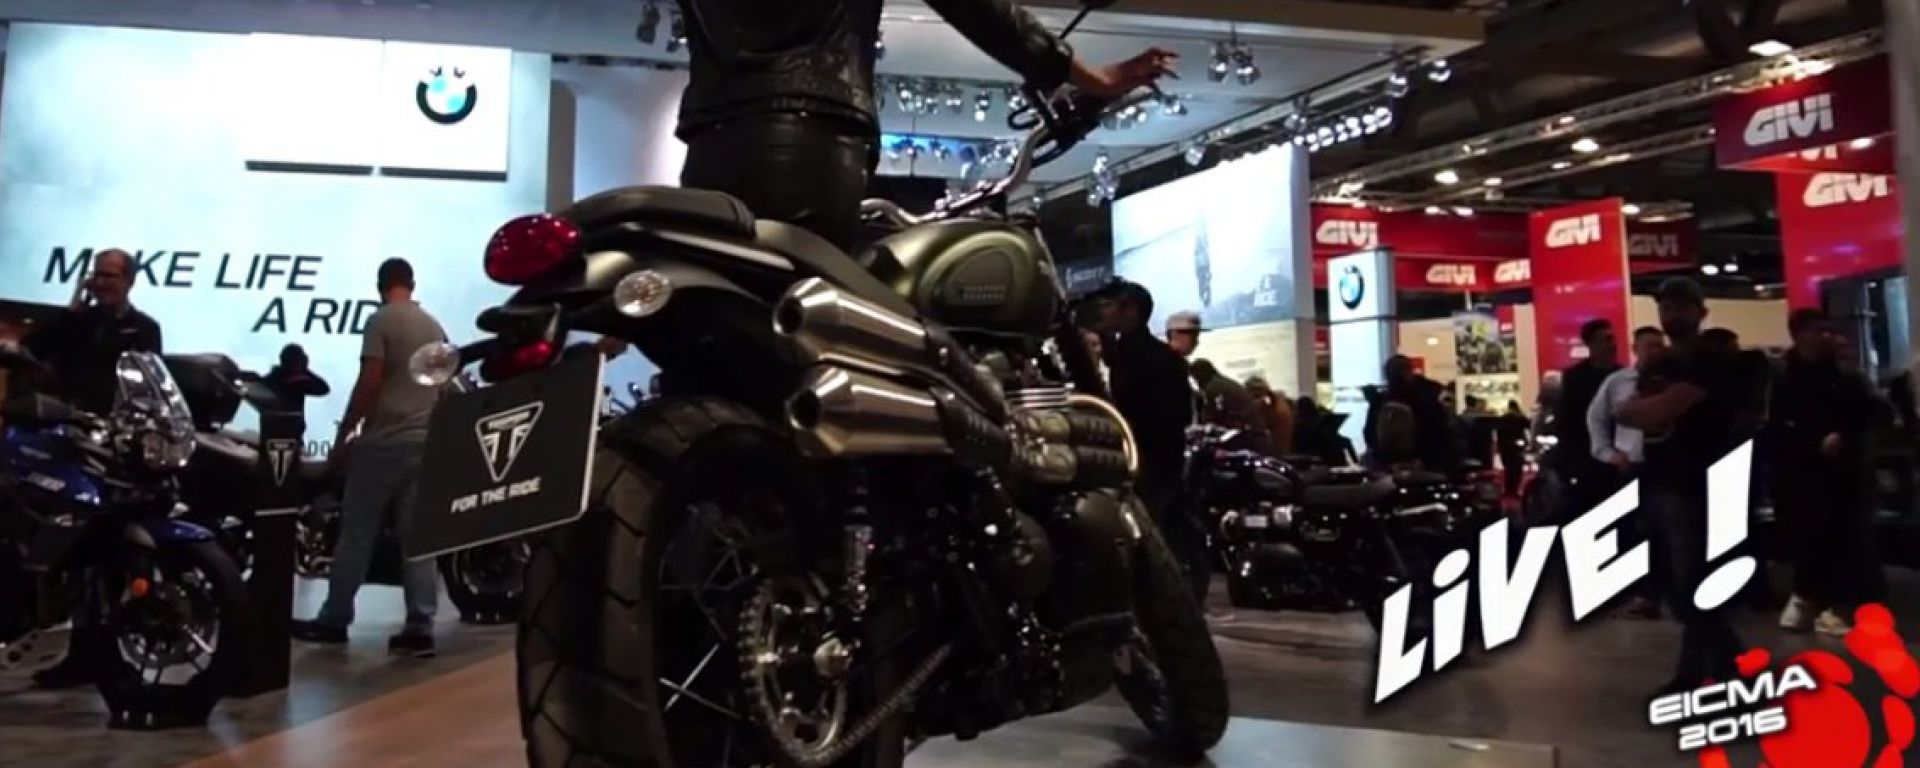 Live Eicma 2016: Triumph Street Scrambler in video